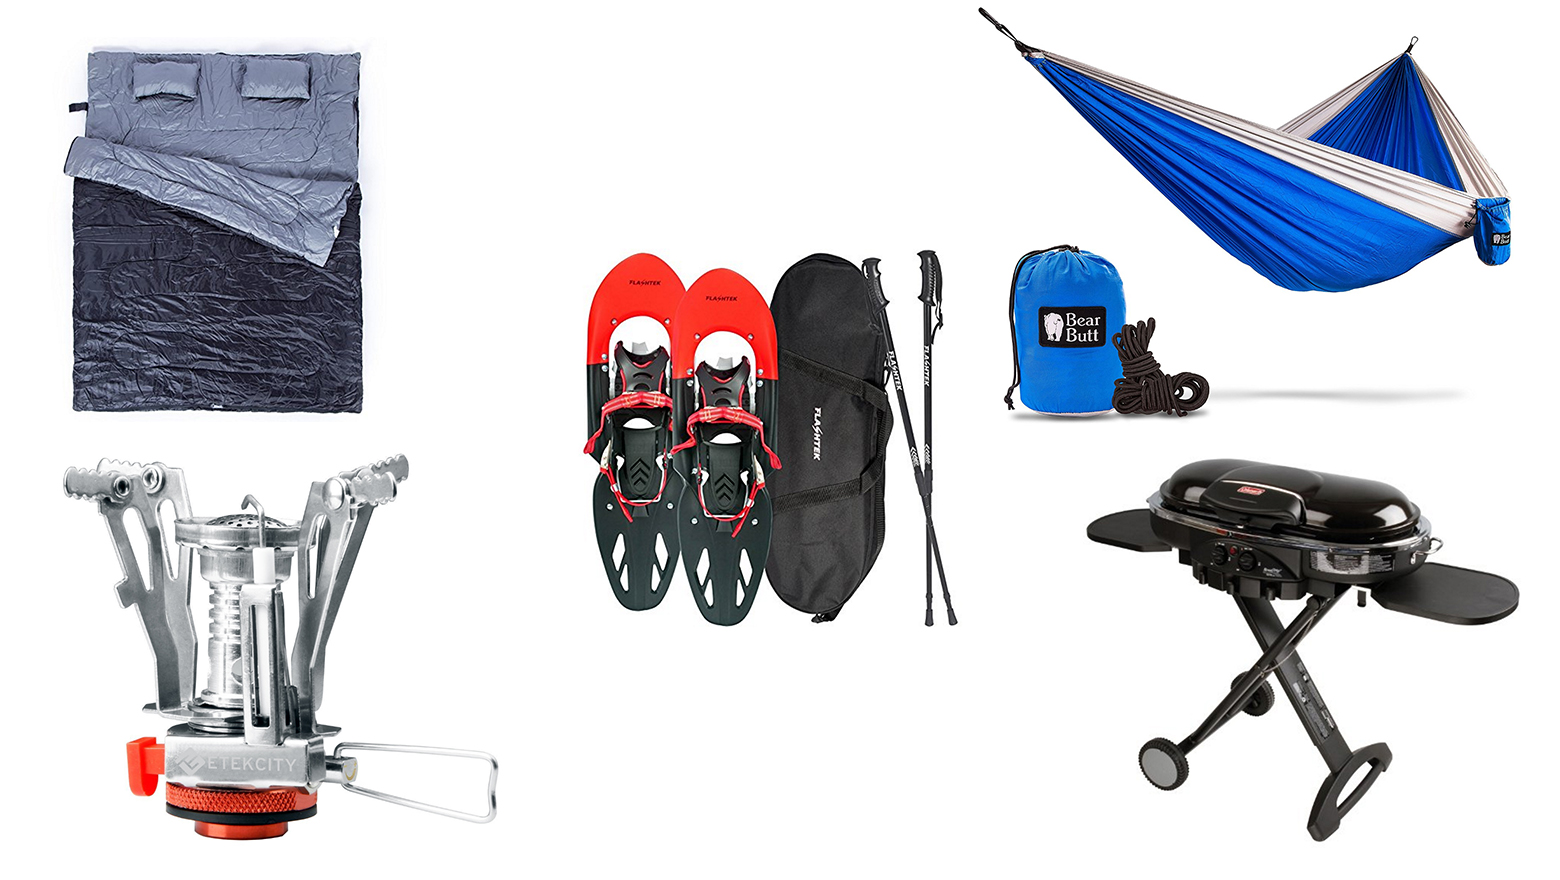 Amazon, cyber monday, cyber monday sales, cyber Monday, outdoor gear, sports equipment, camping gear, camping equipment